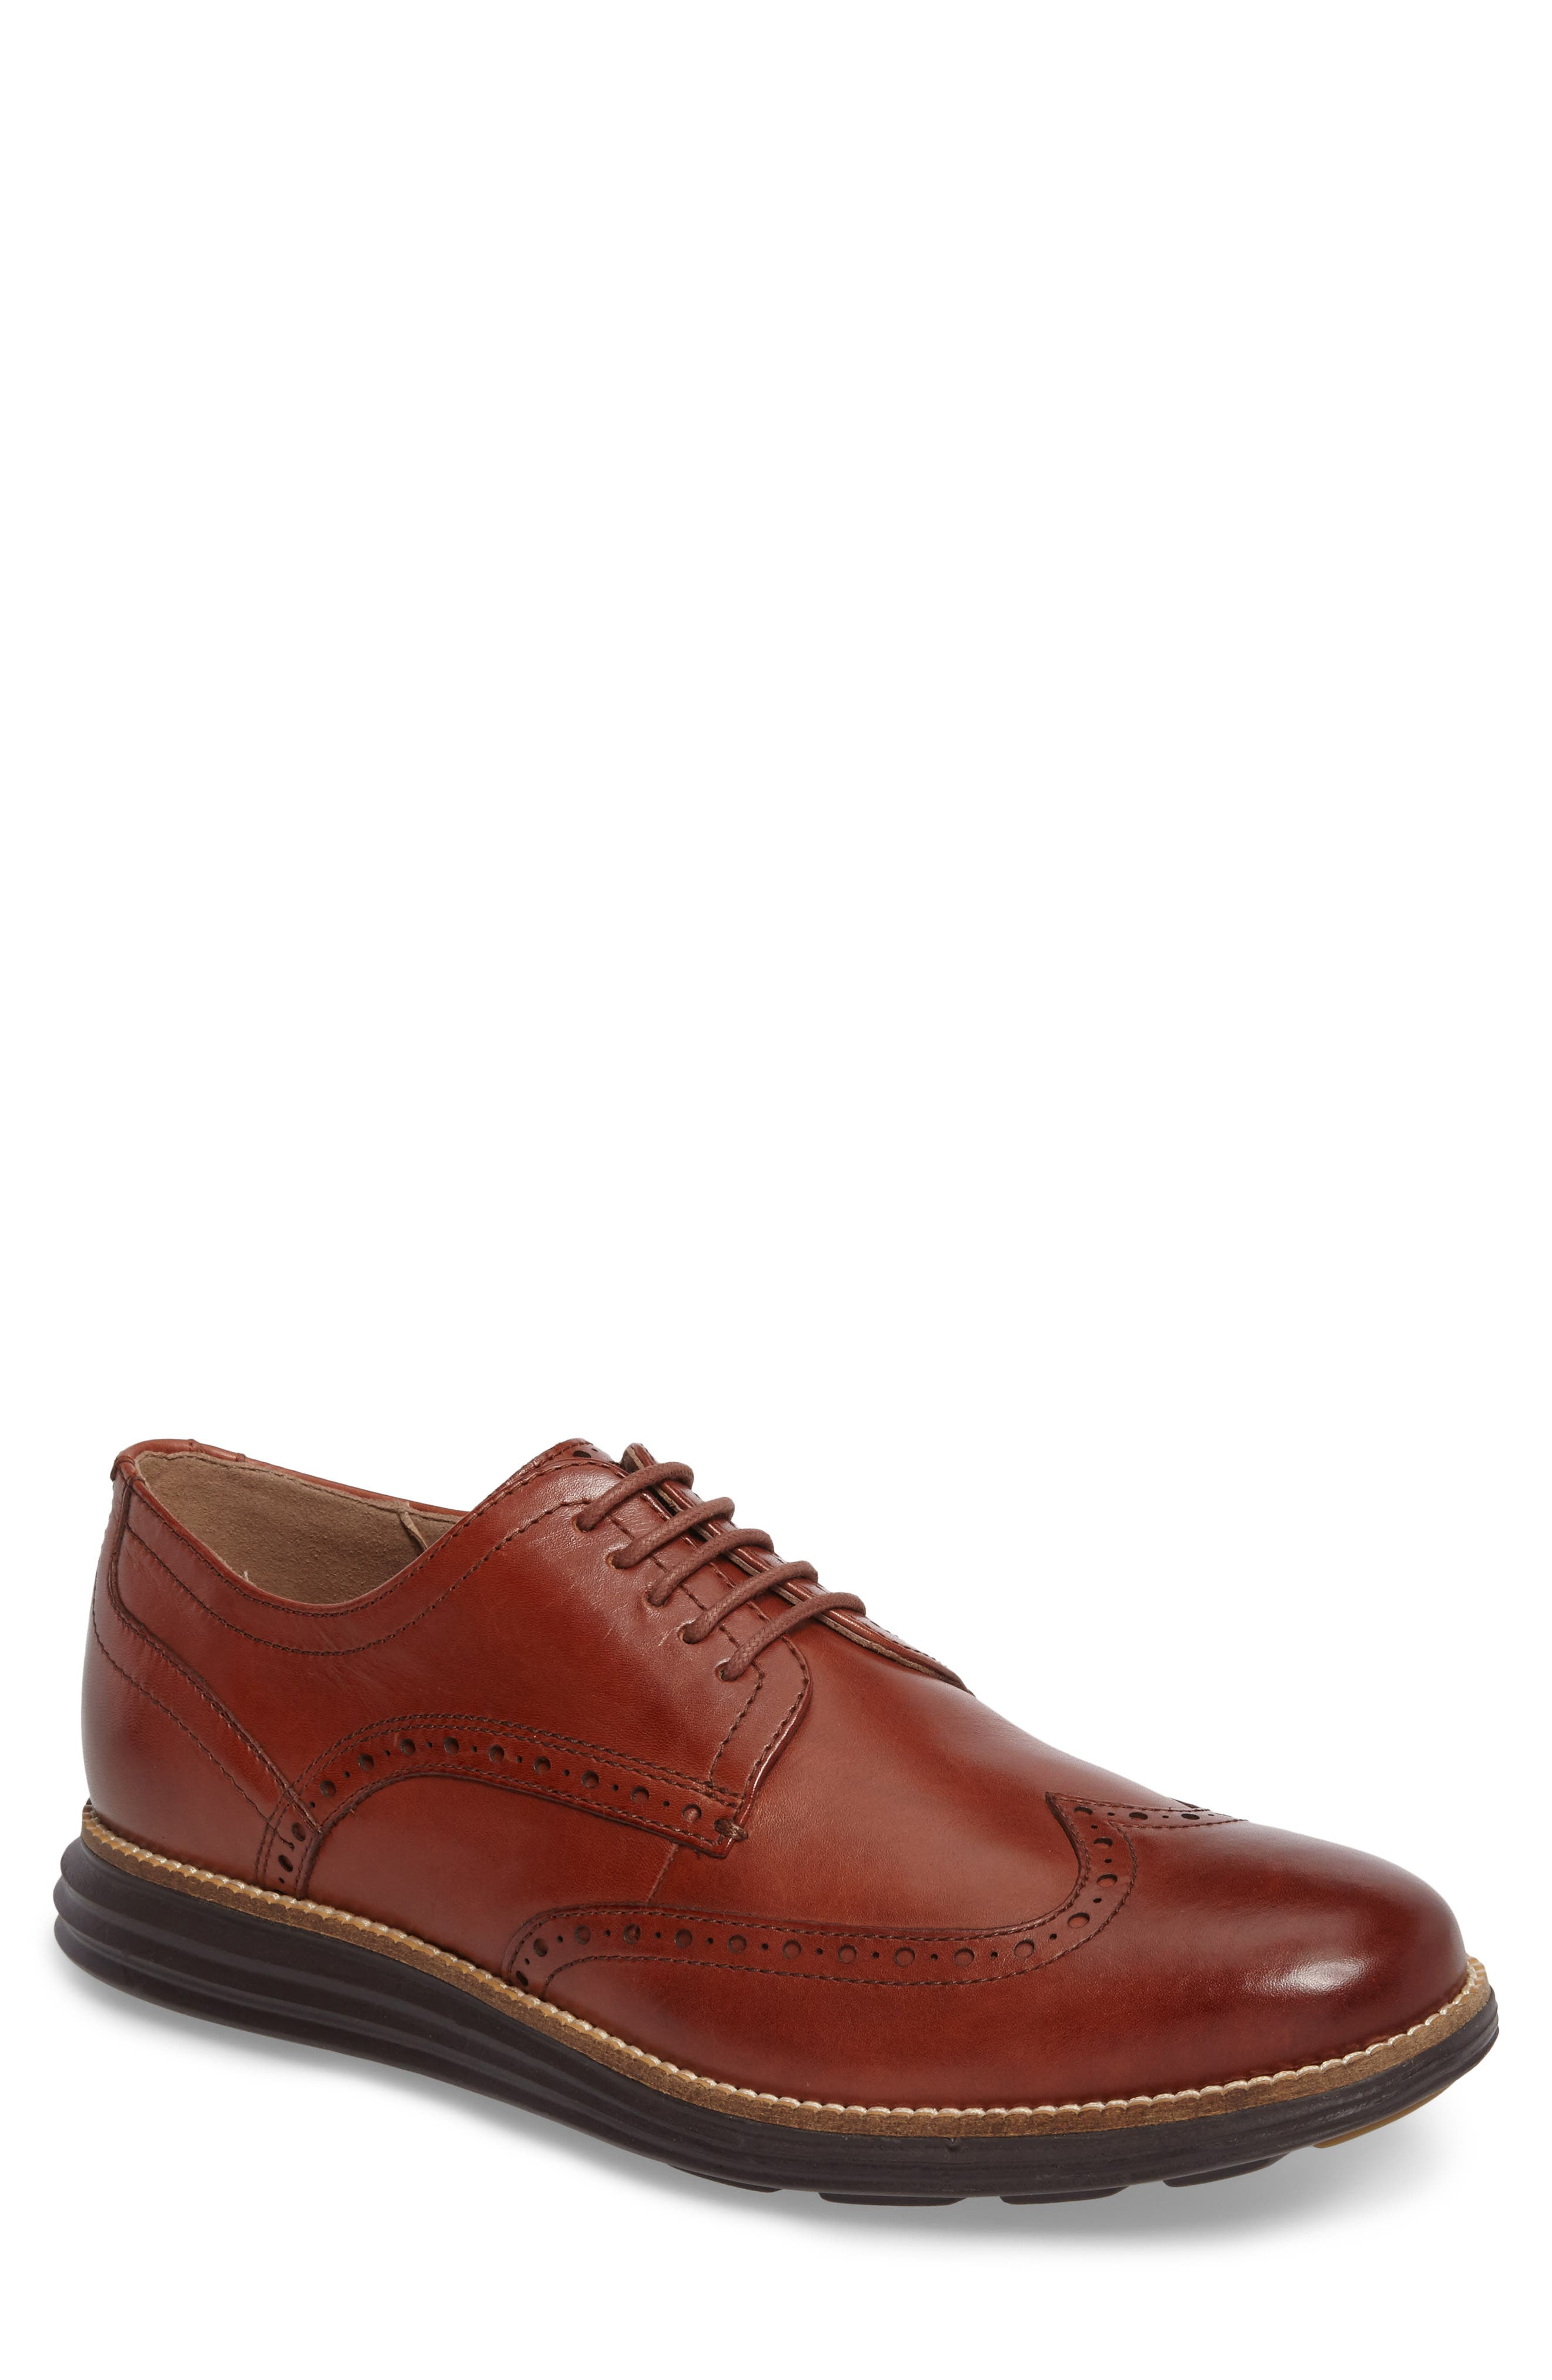 COLE HAAN, Original Grand Wingtip, Main thumbnail 1, color, WOODBURY/ JAVA LEATHER